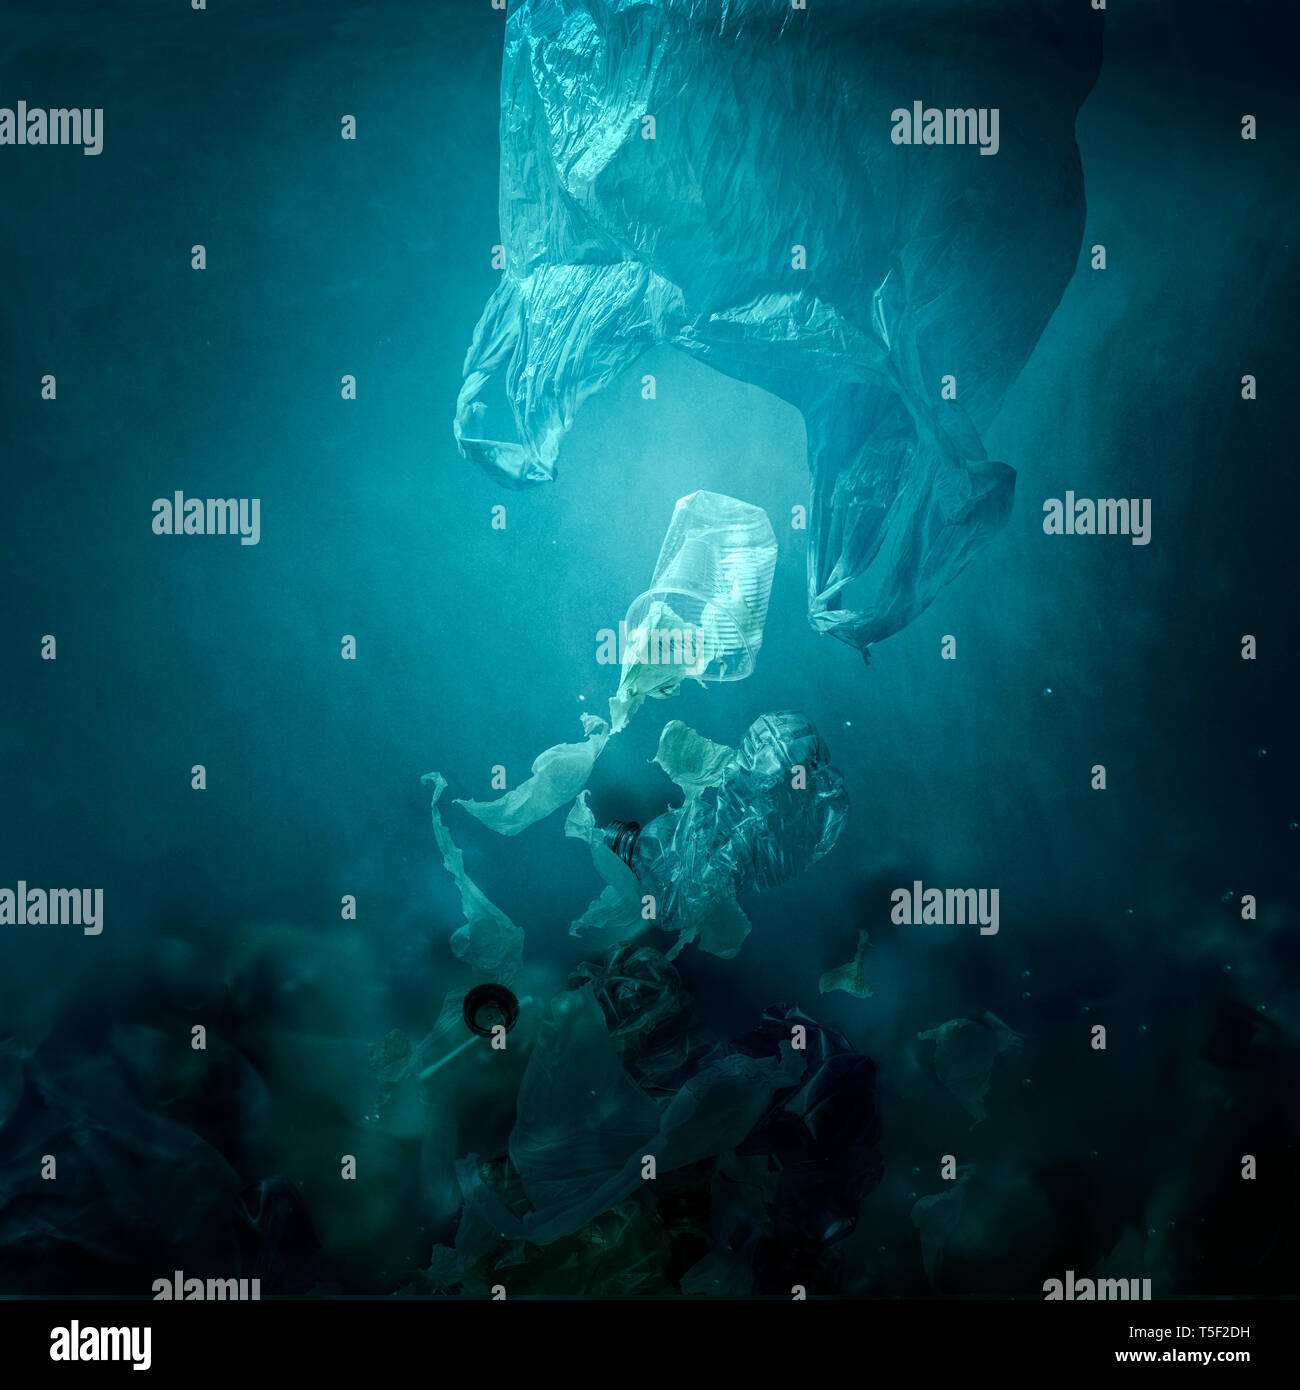 Plastic bag floating underwater and dispersing waste, ocean pollution and environmental damage concept - Stock Image